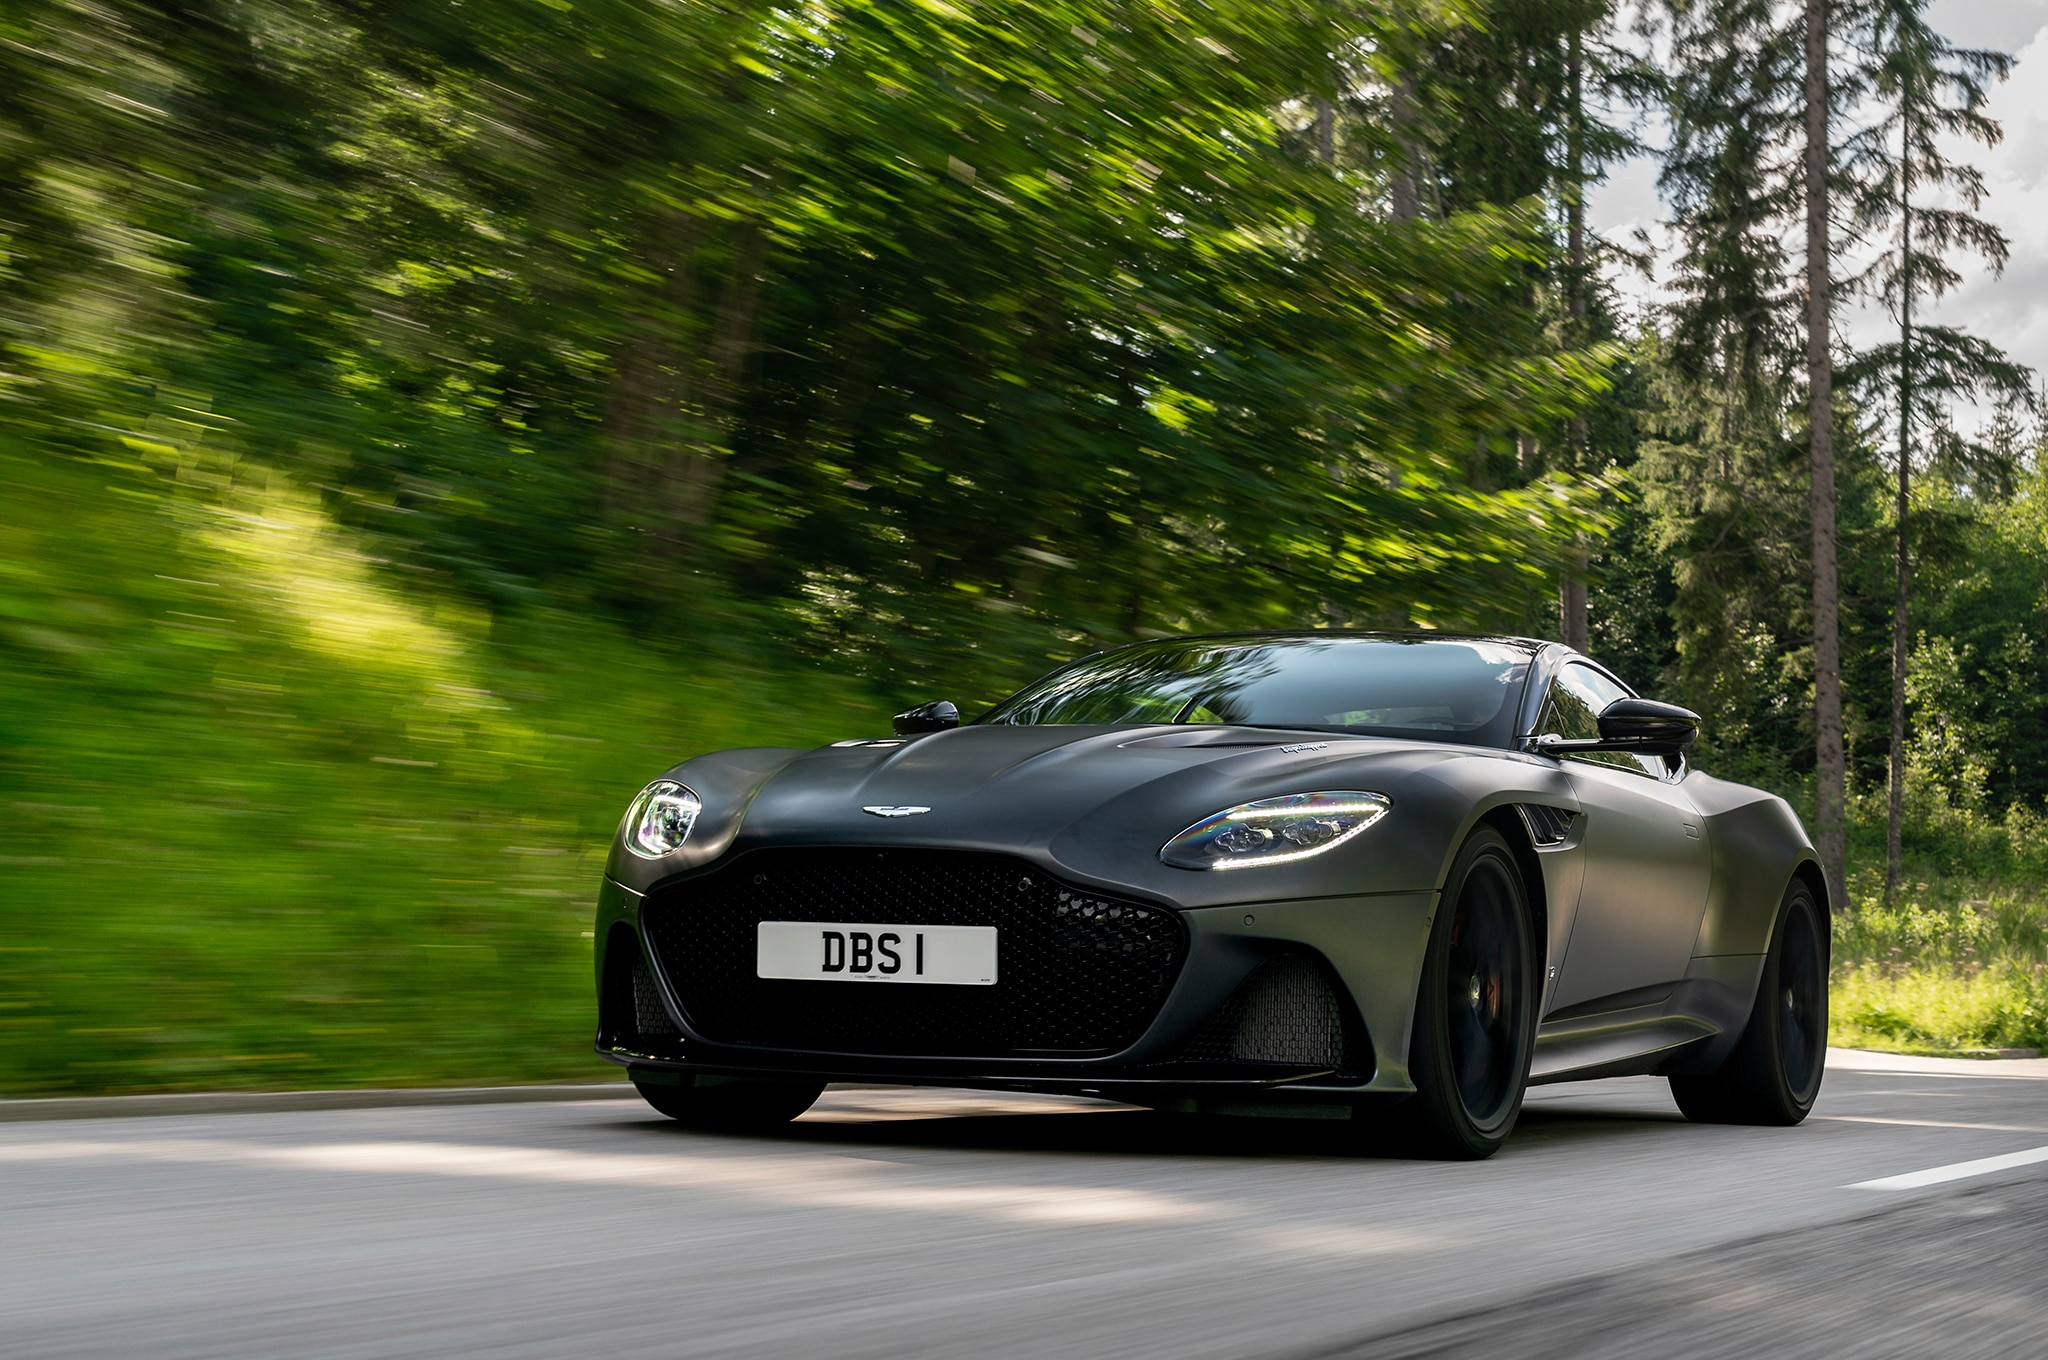 715 Hp Aston Martin Dbs Superleggera Power Boost Possible